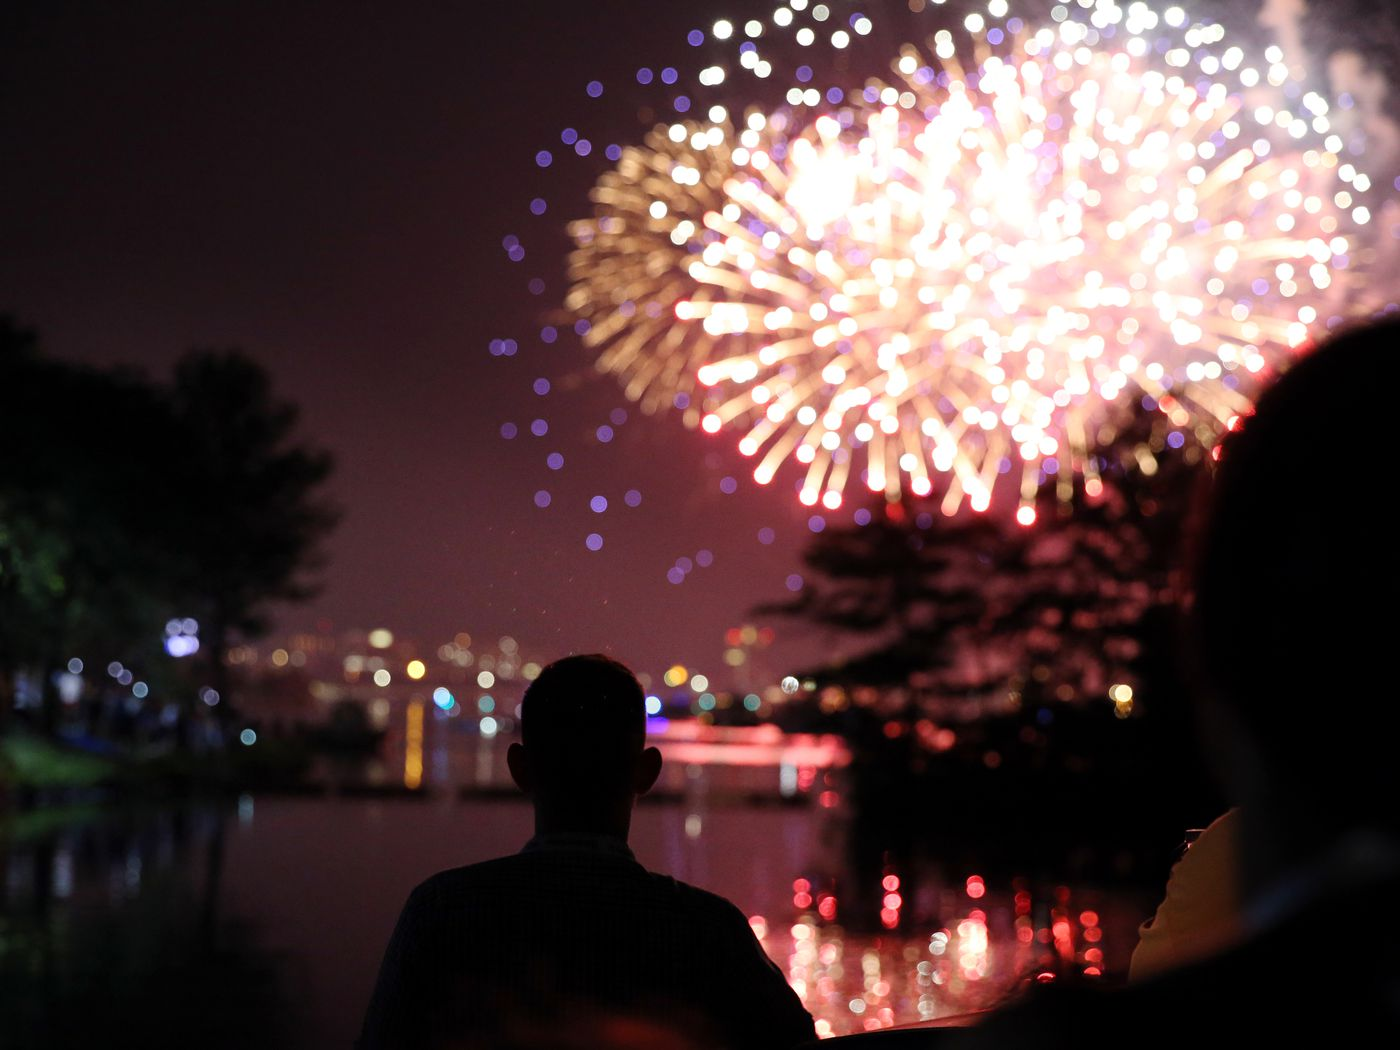 Boston's 4th of July fireworks: Where to watch